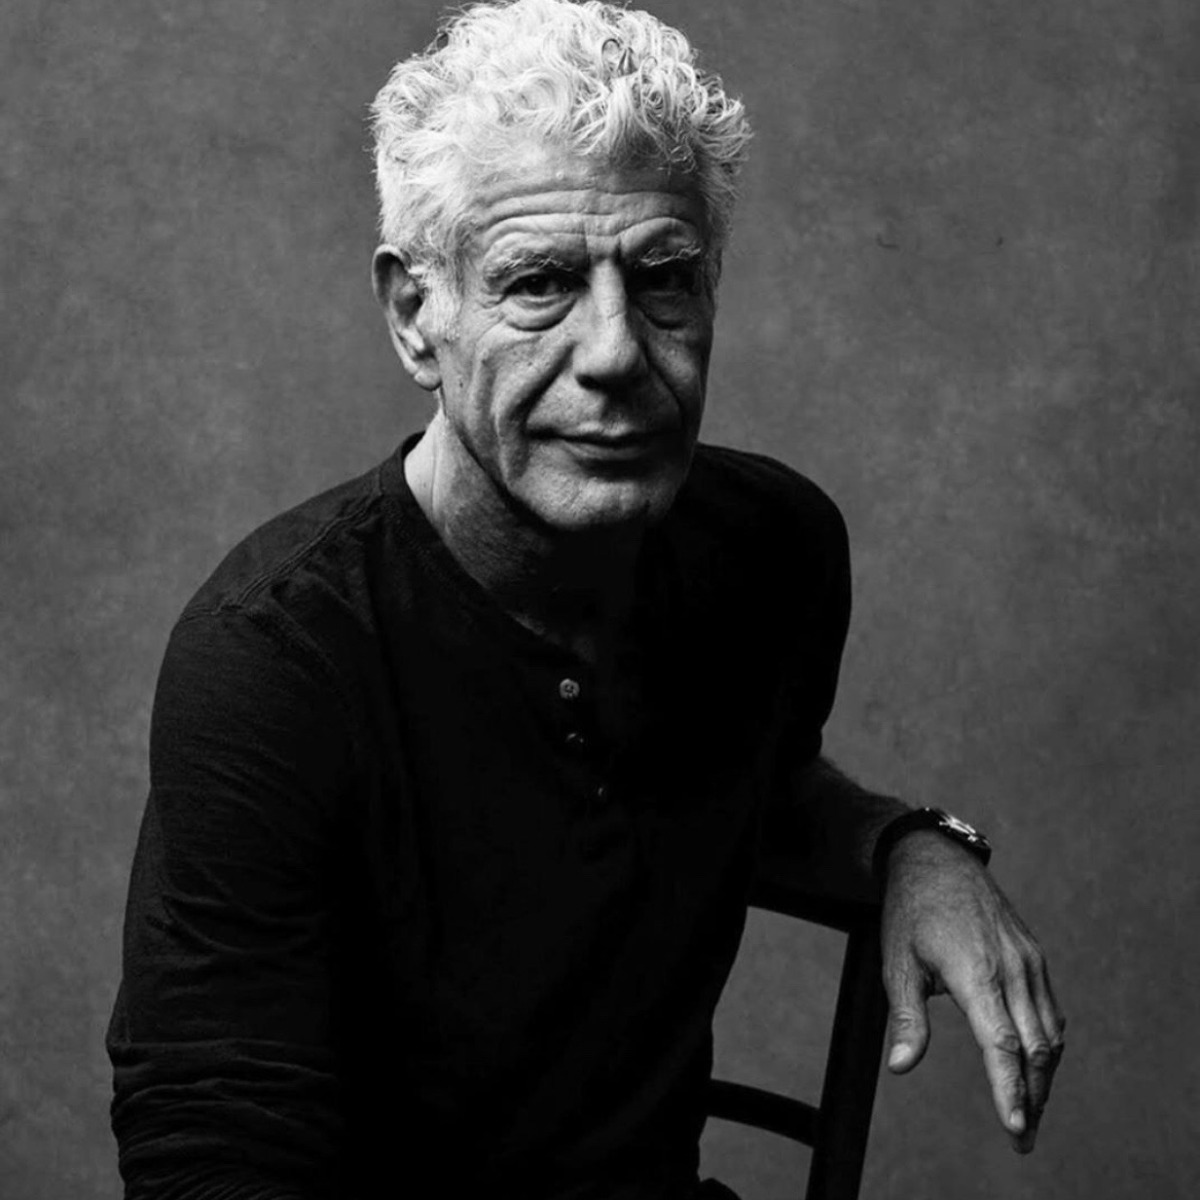 How suicide prevention is becoming part of Anthony Bourdain's legacy